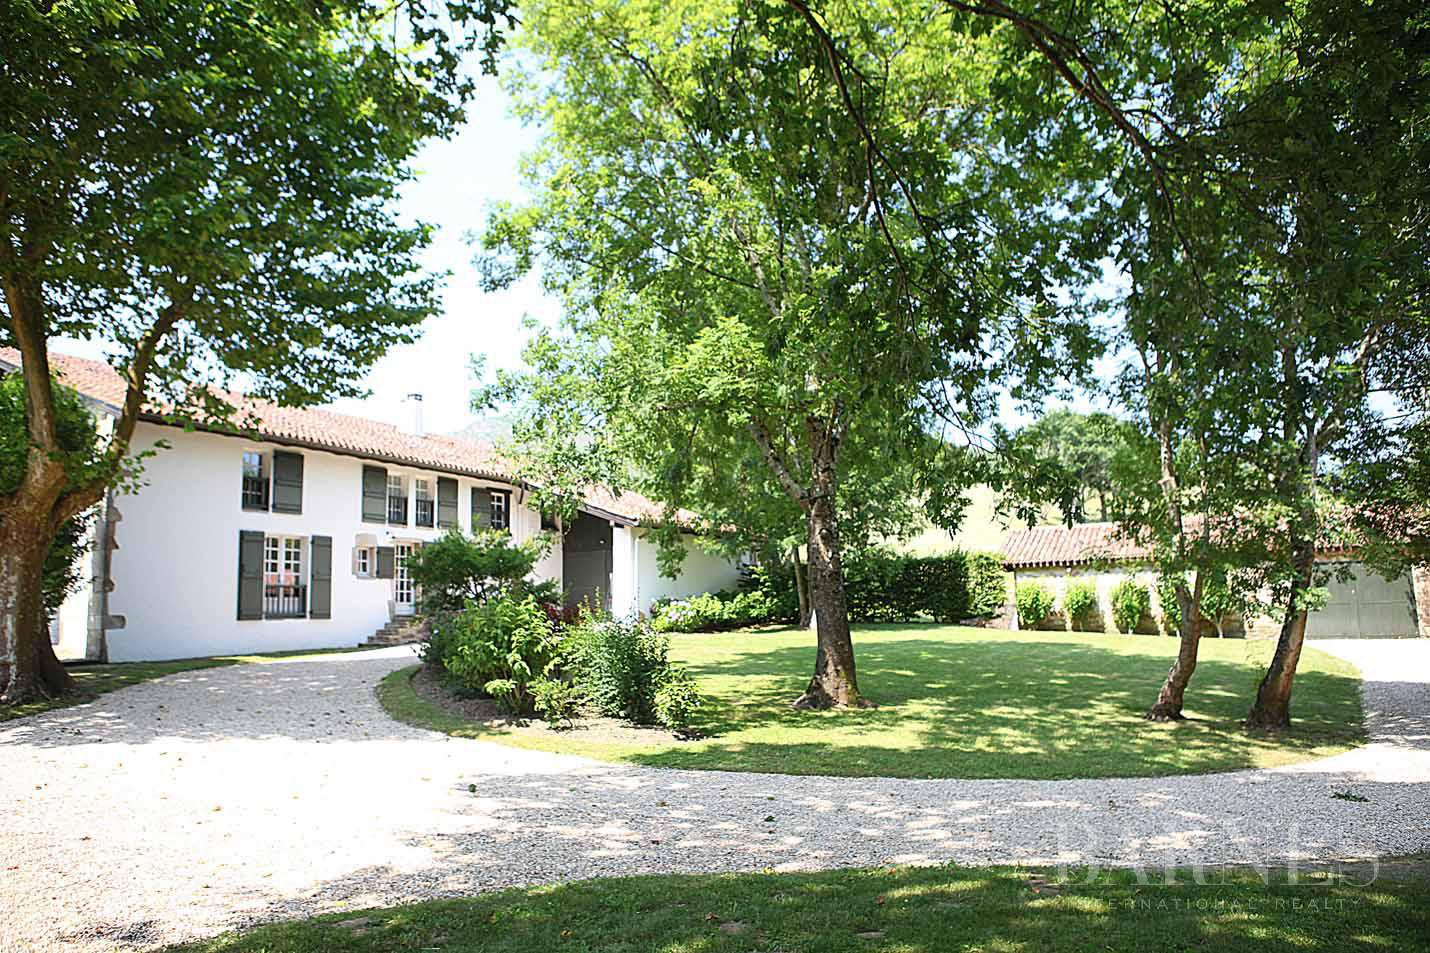 SARE, 20 MINUTES FROM SAINT JEAN DE LUZ, BASQUE STYLE FARMHOUSE WITH HEATED POOL, PANORAMIC MOUNTAIN VIEW picture 8